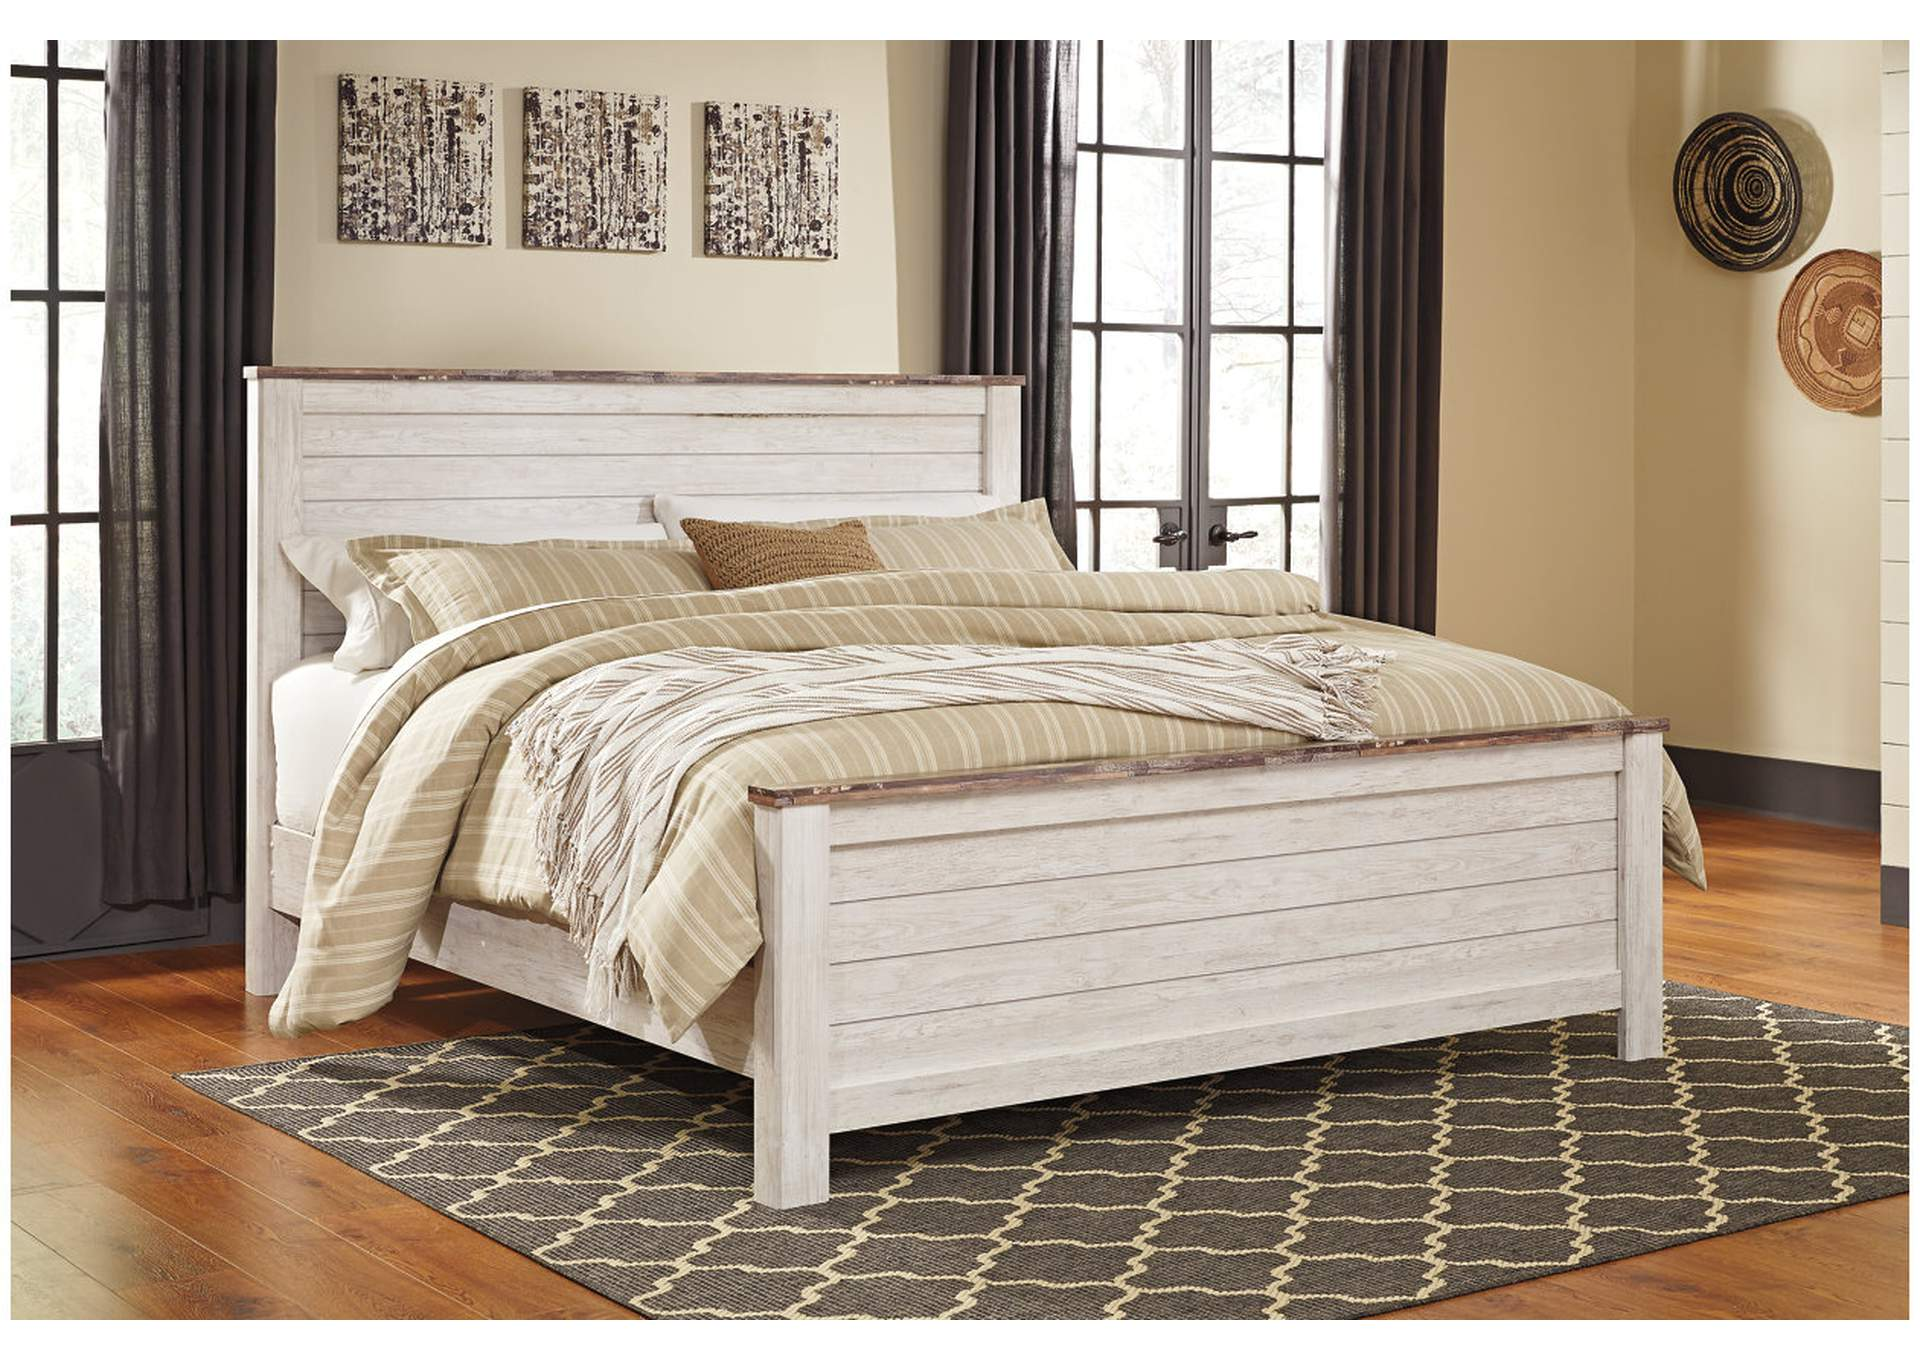 Willowton Whitewash California King Panel Bed,ABF Signature Design by Ashley